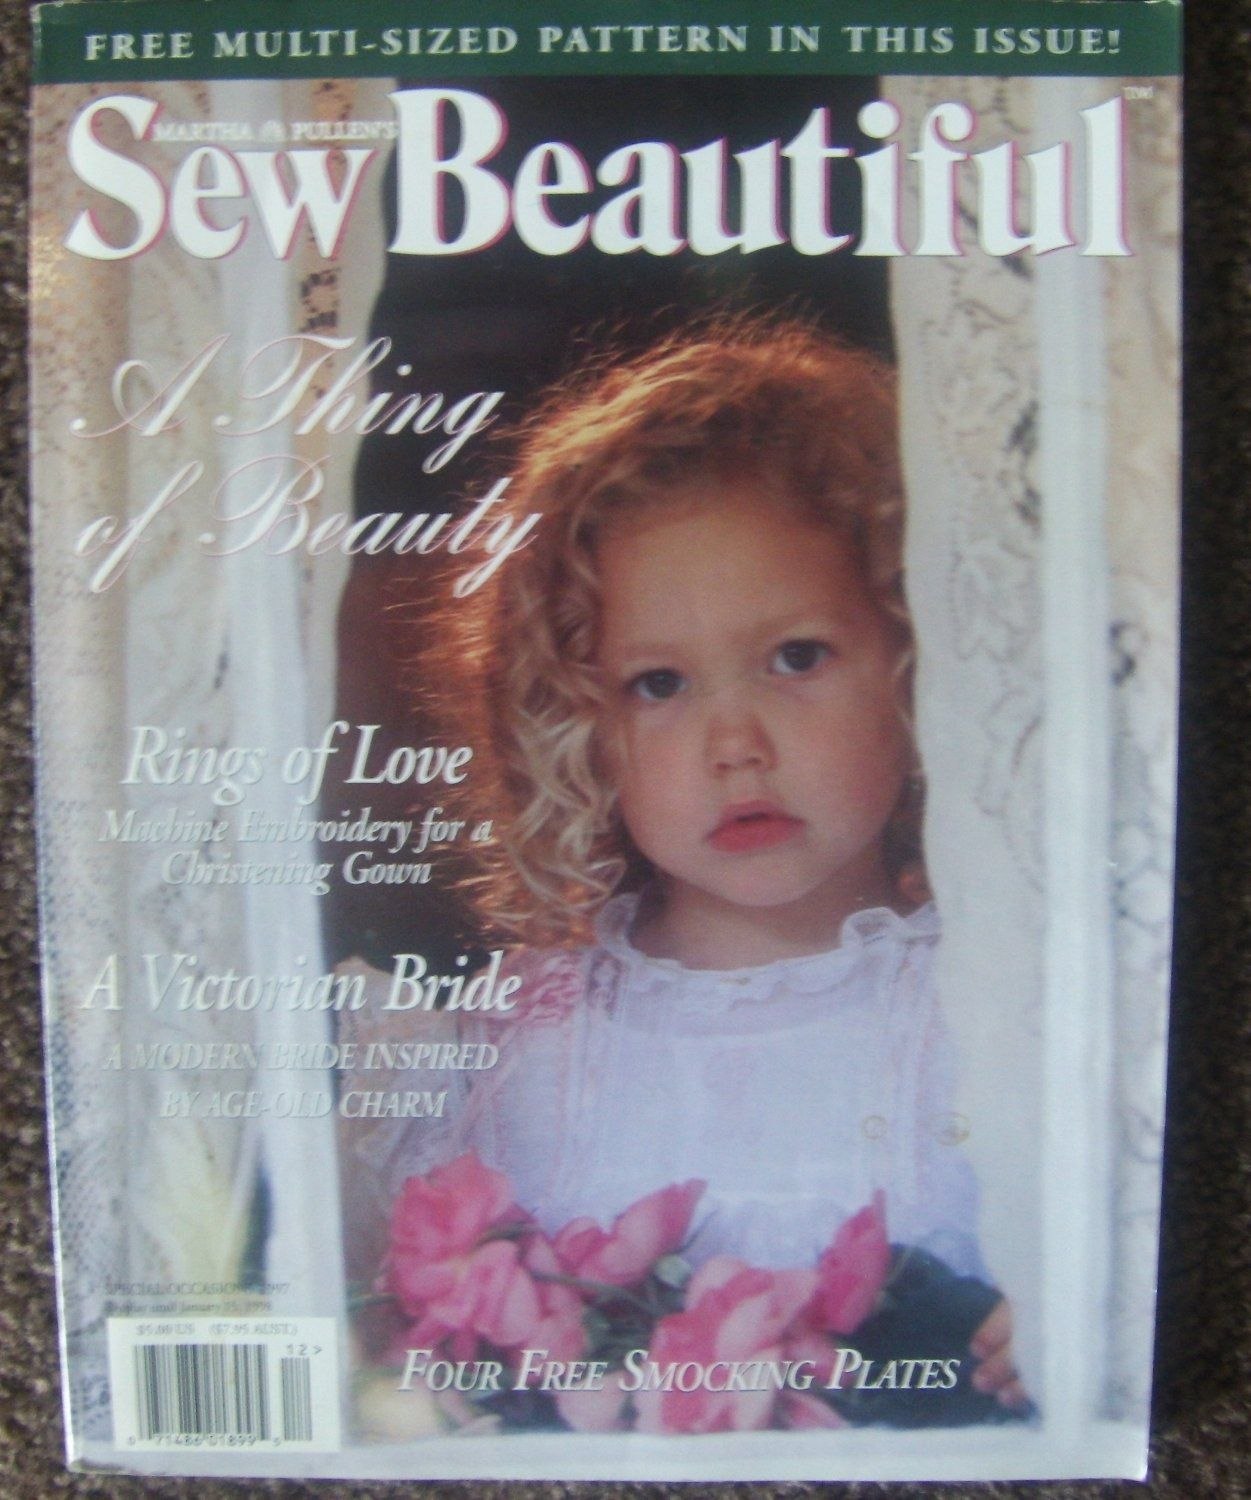 Sew Beautiful Magazine 2 1997 Heirloom Sewing Smocking Patterns Embroidery Special Ocassions 1997 Issue On Sale 1 99 Smocking Patterns Heirloom Sewing Smocking